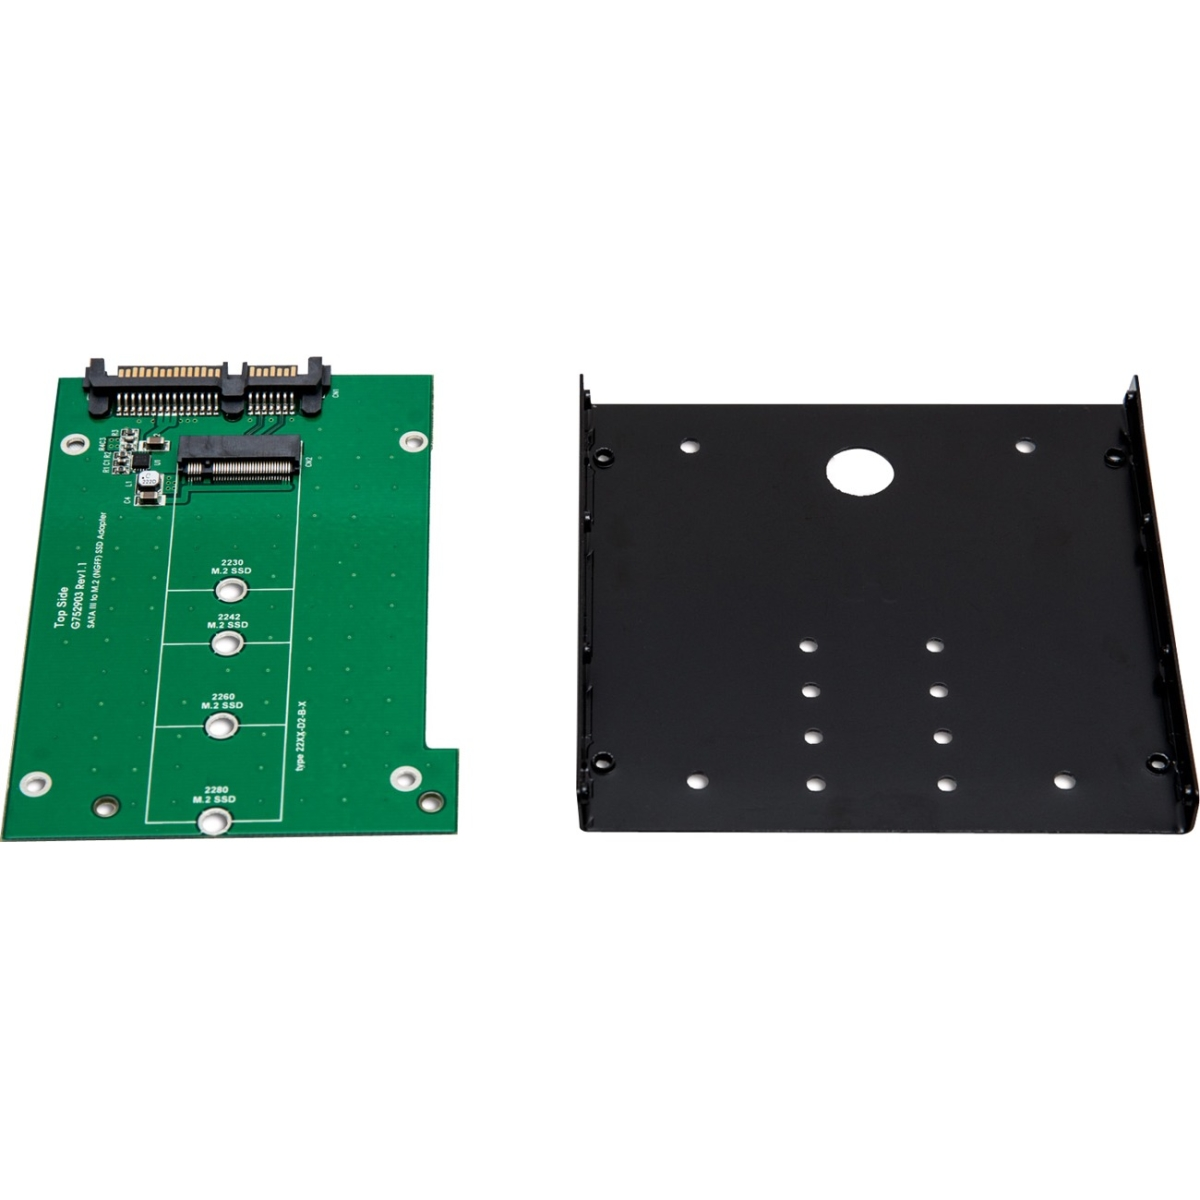 Multimedia 3.5 inch SATA to M.2 SSD Adapter